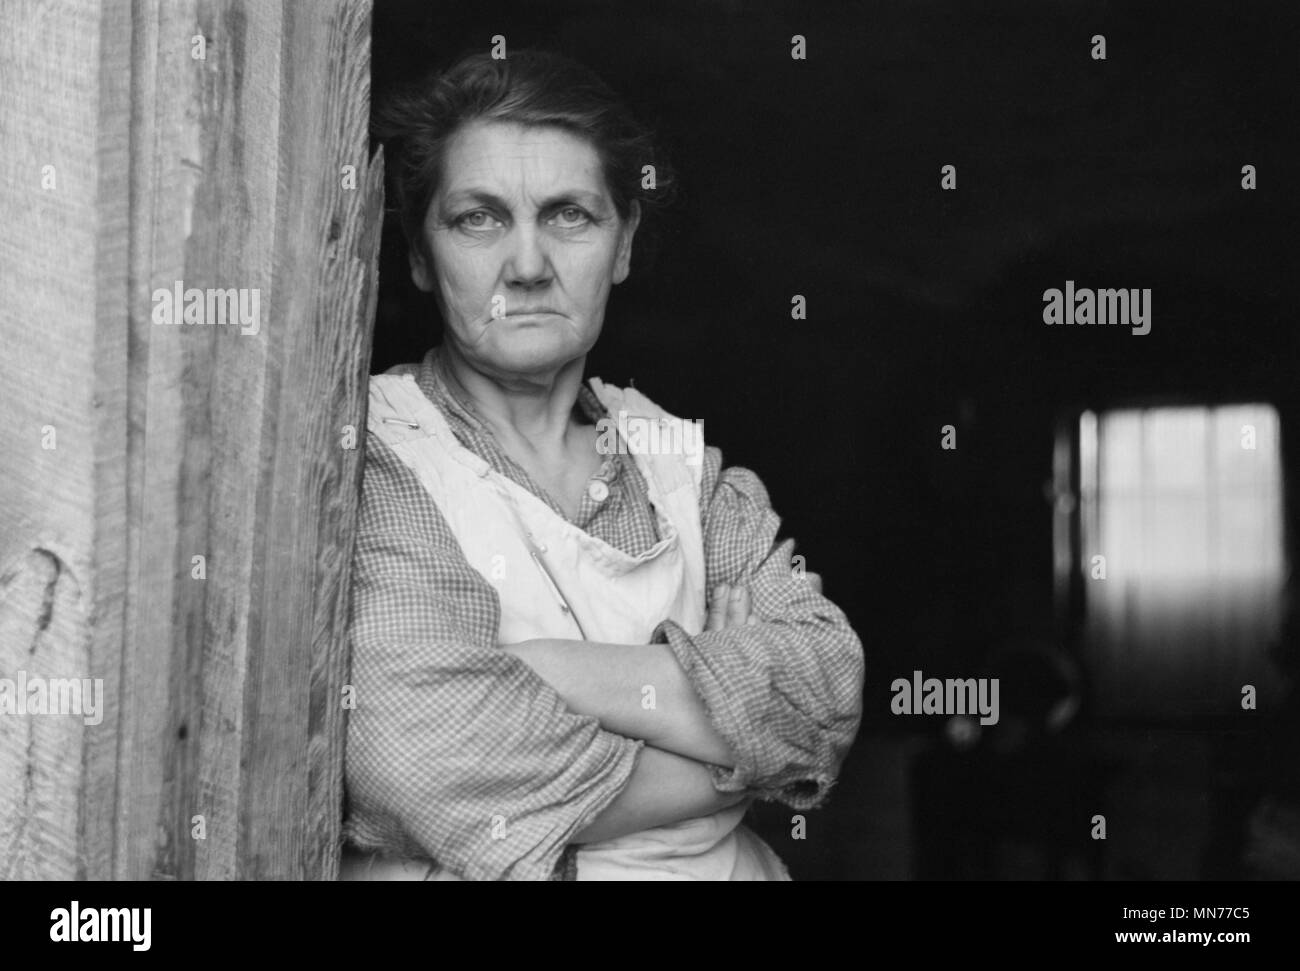 Rehabilitation Client's Wife, Jackson County, Ohio, USA, Theodore Jung for U.S. Resettlement Administration, April 1936 - Stock Image